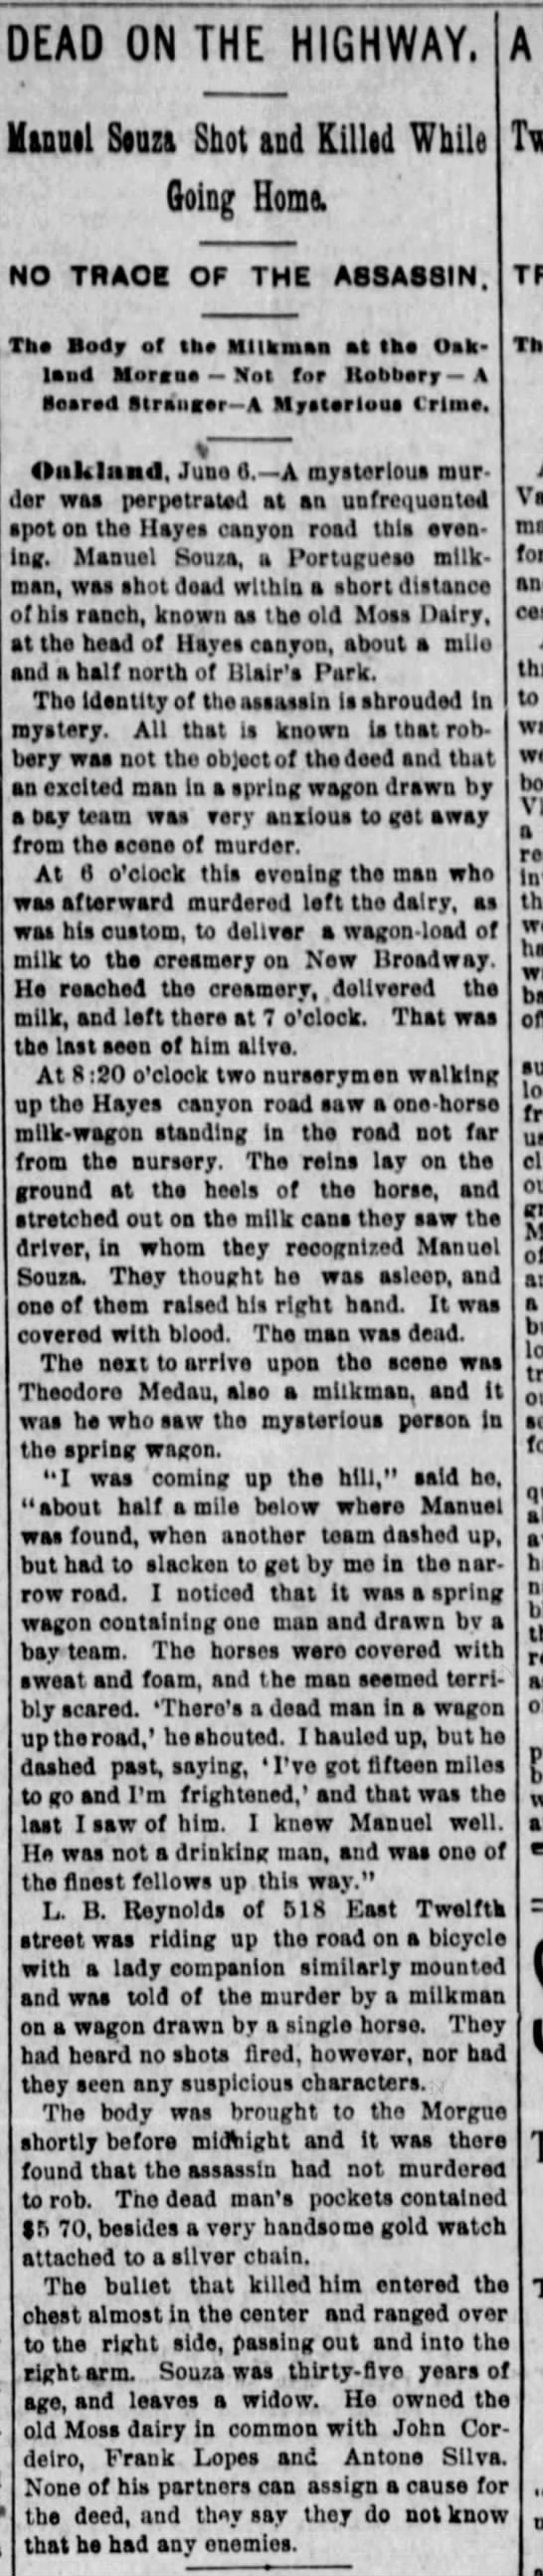 Dead on the Highway - Hayes Canyon Road - Jun 07 1894 -